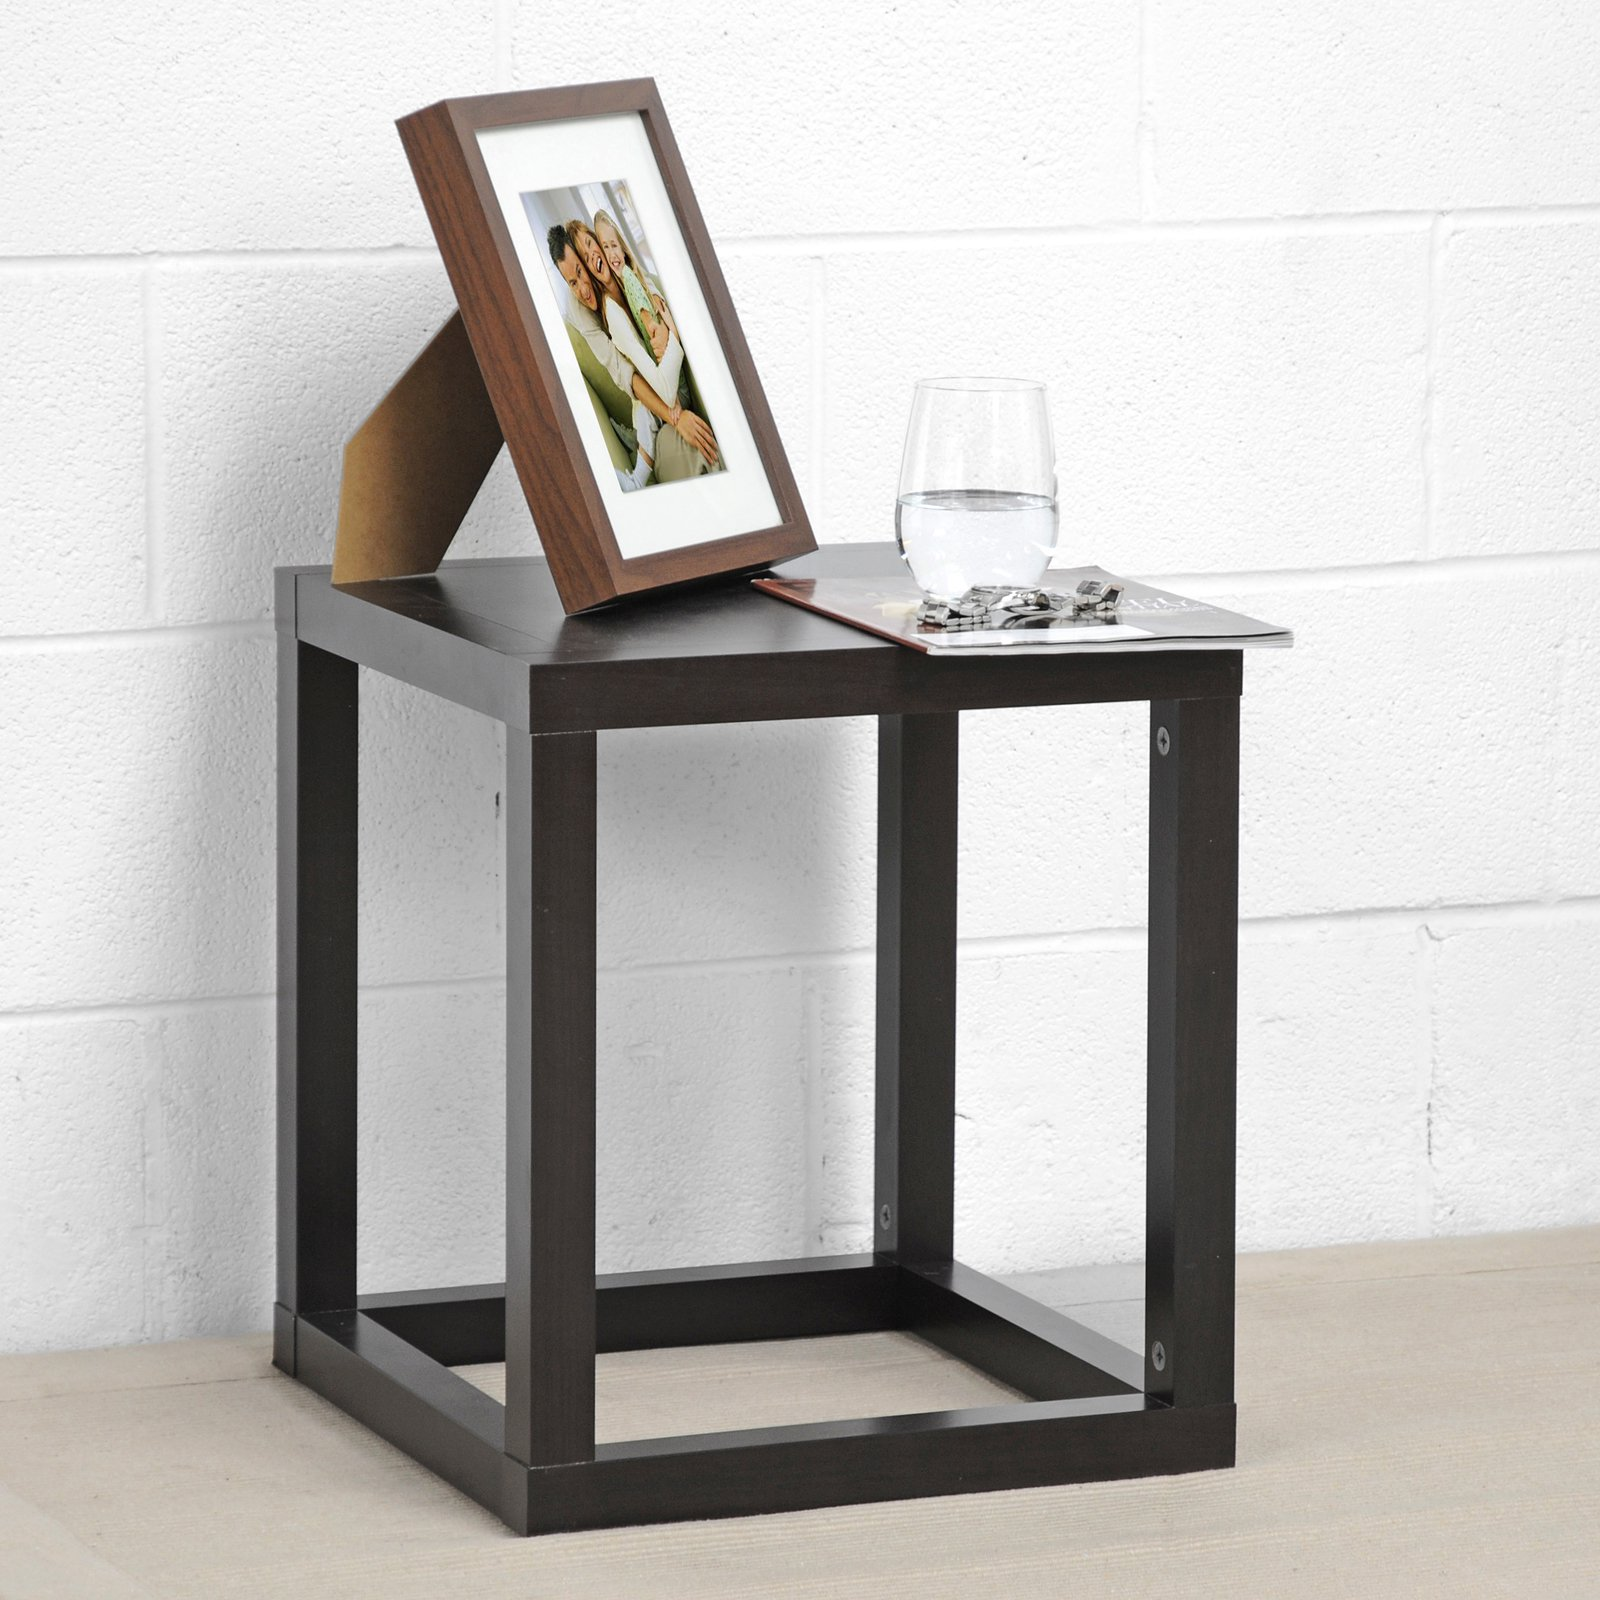 Hallis Brown Modern Accent Table and Nightstand by Baxton Studio